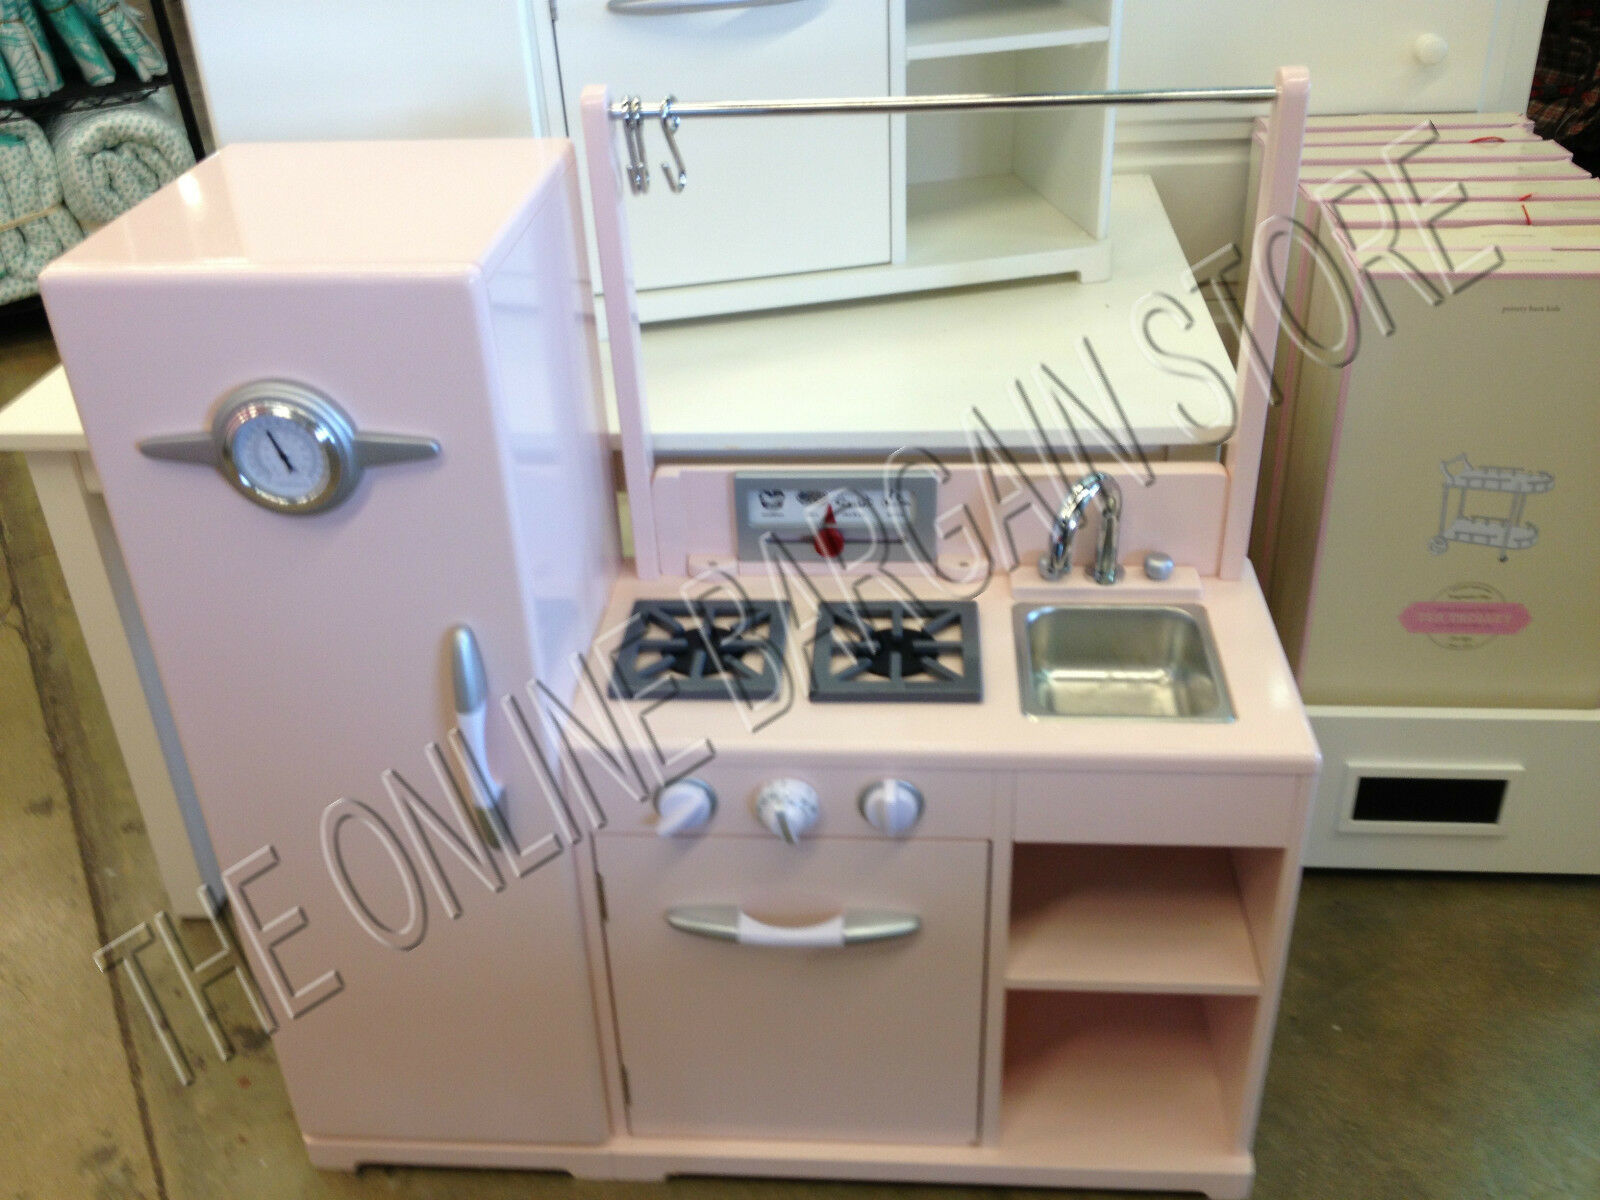 Pottery Barn Kids Pink All In One Retro Play Pretend Kitchen Set Stove Fridge 1 Of 9